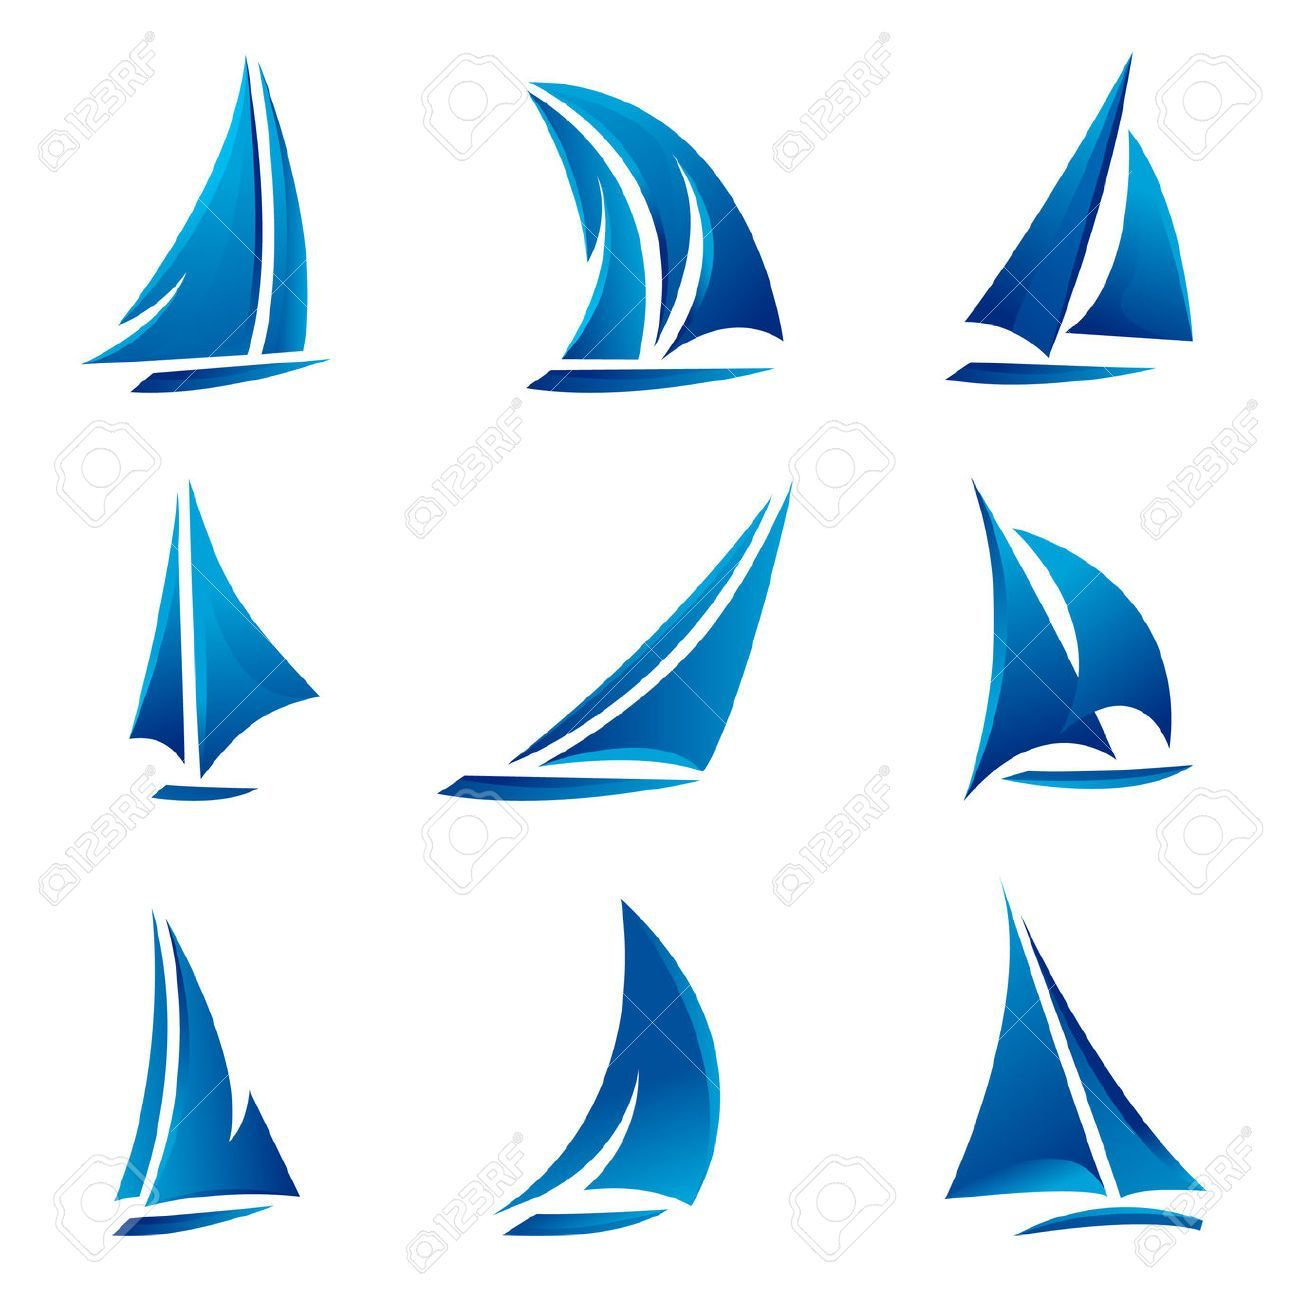 sailboat stock vector illustration and royalty free sailboat clipart yachttattoo [ 1300 x 1300 Pixel ]